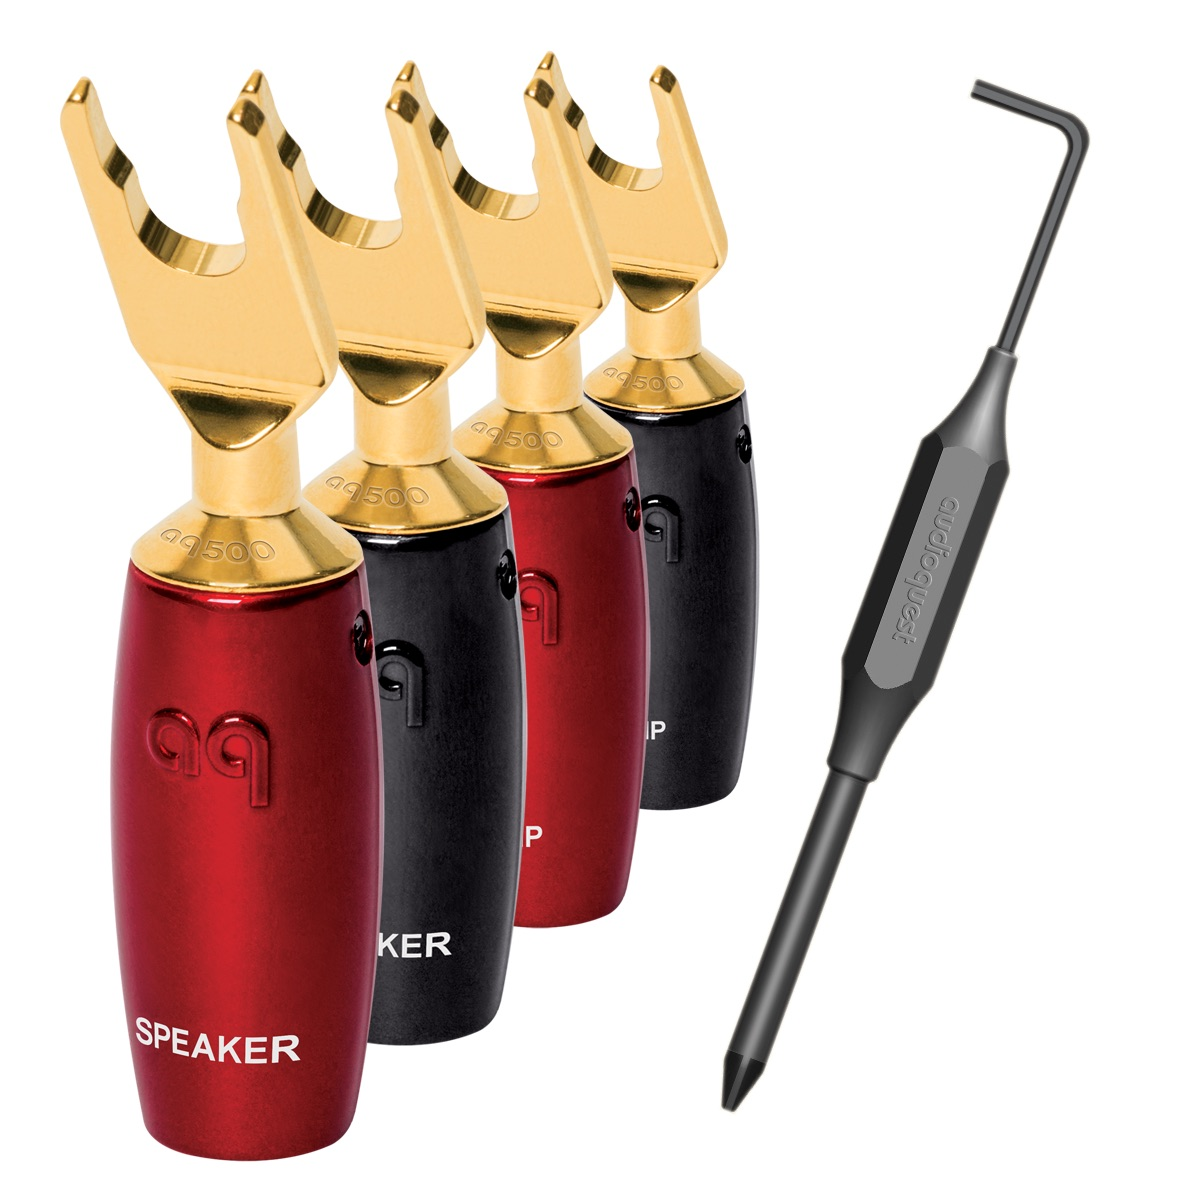 AudioQuest 507 Series Multi-Spade Gold 4er Set Lautsprecherstecker